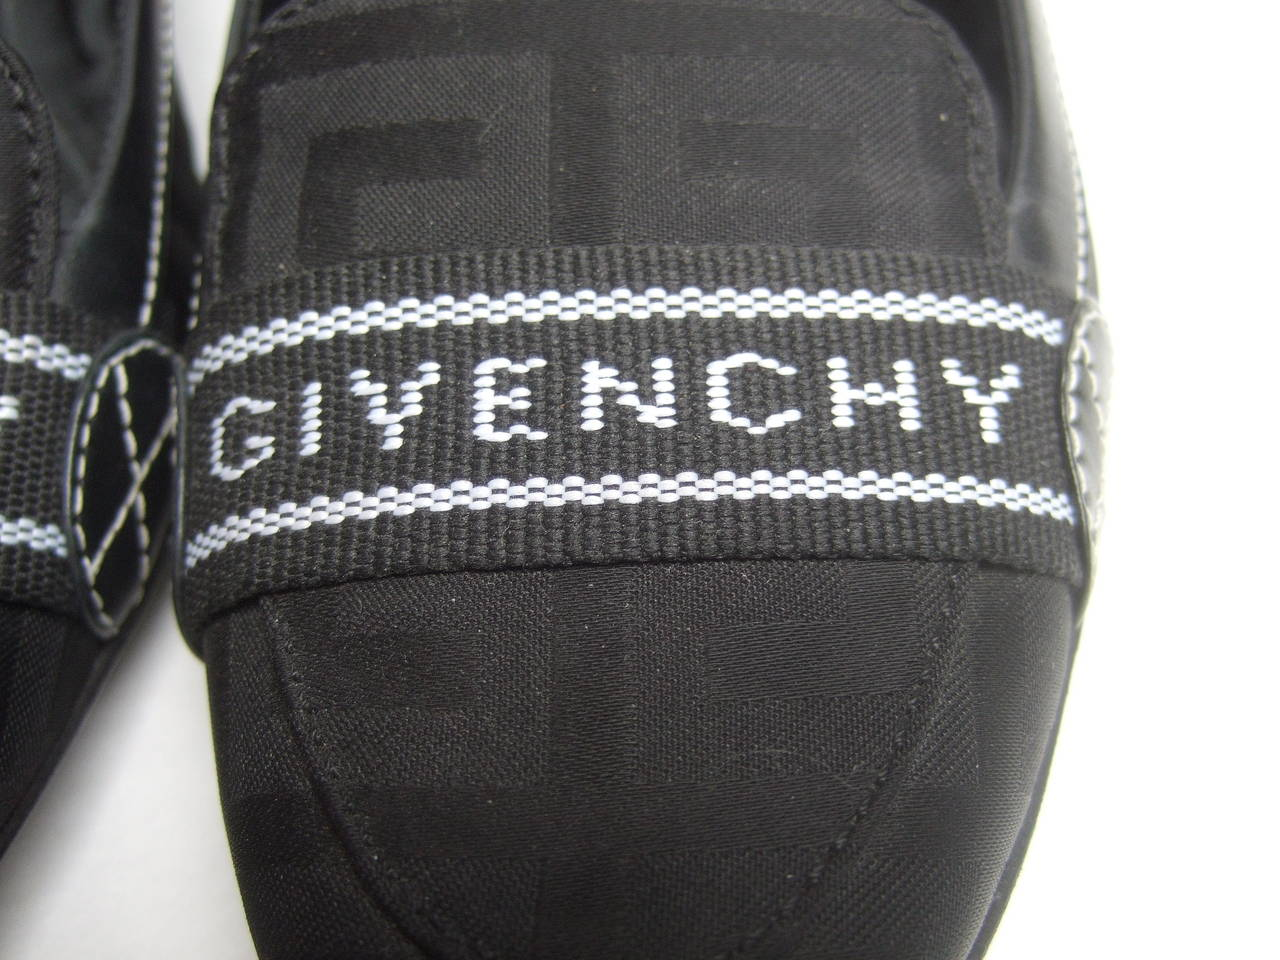 Givenchy Black Canvas Skimmer Flats Made in Italy Size 38.5 In Good Condition For Sale In Santa Barbara, CA